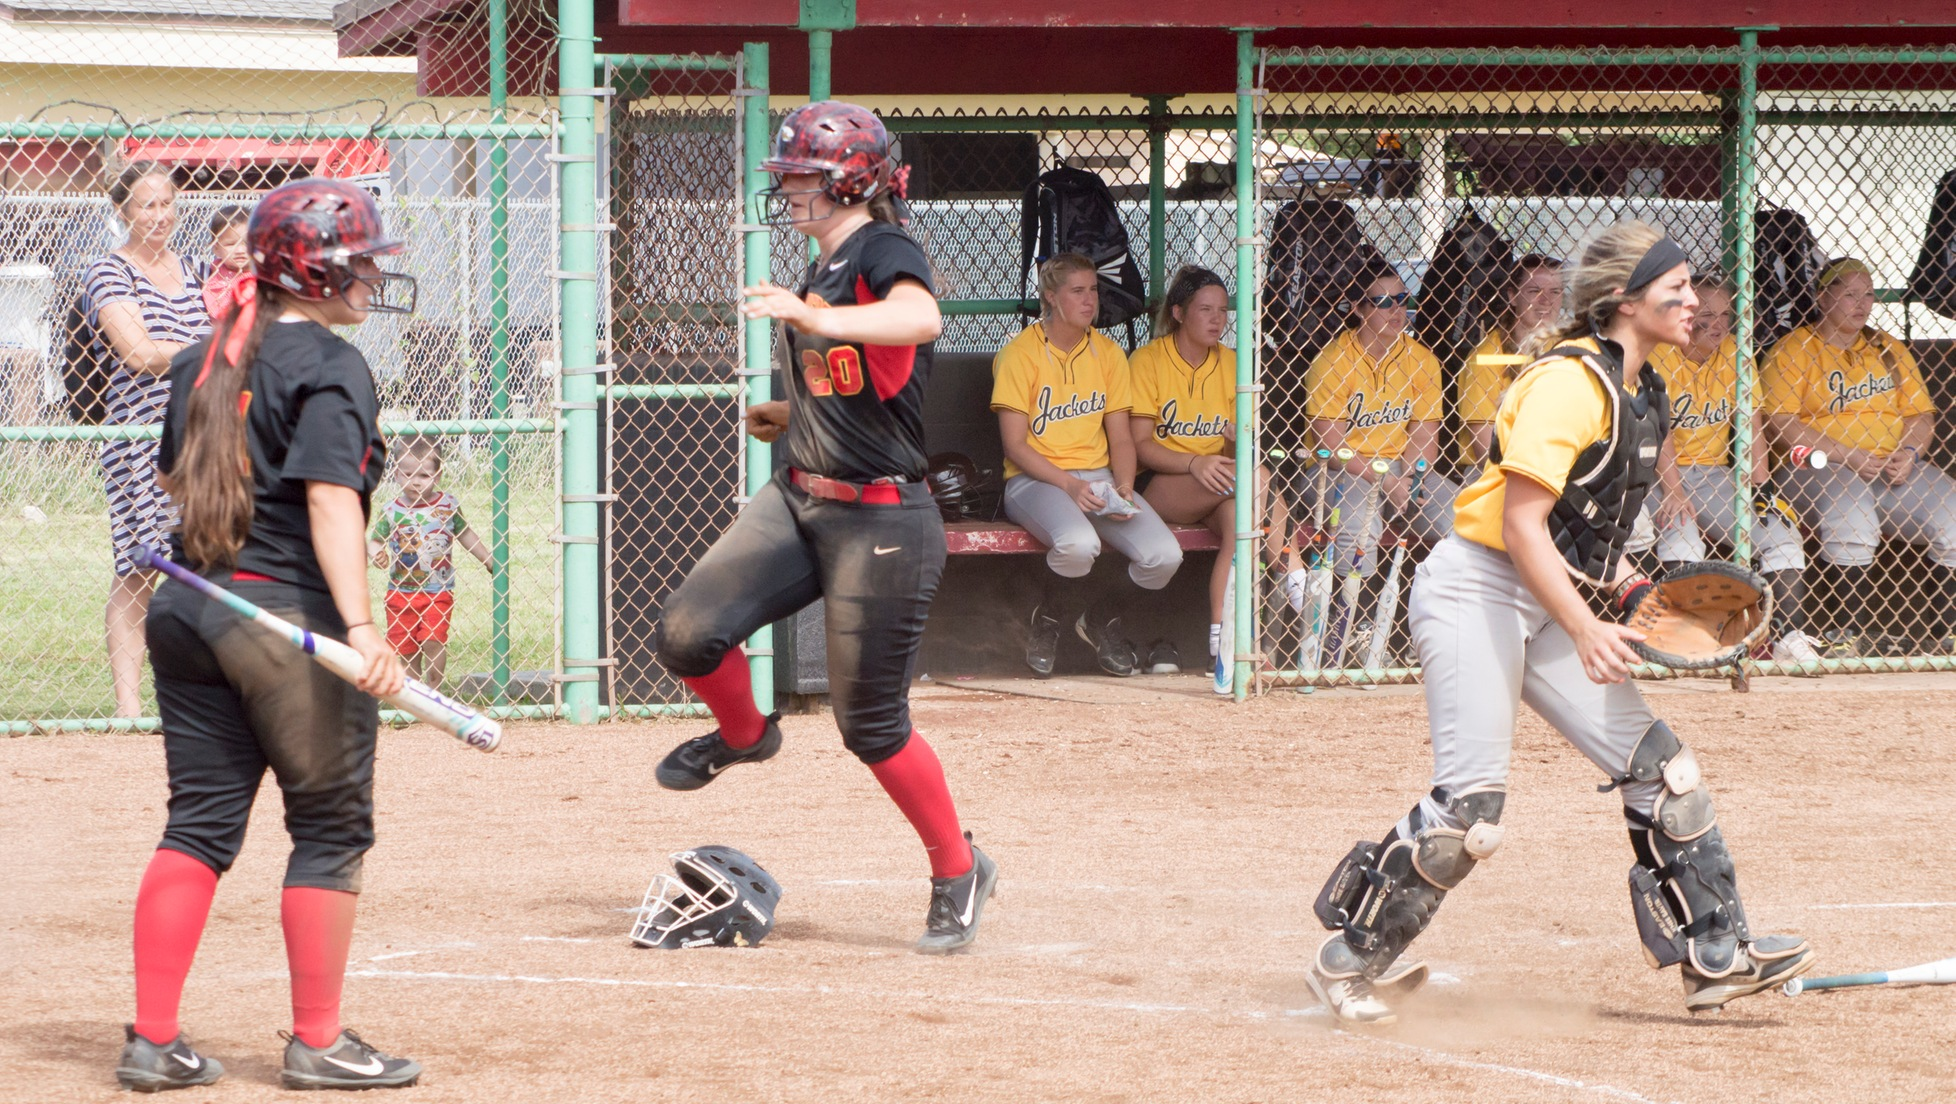 Alanna Anderson crosses the plate against Baldwin Wallace. Her 2-RBI single against Azusa Pacific in the bottom of the sixth brought in the winning run.